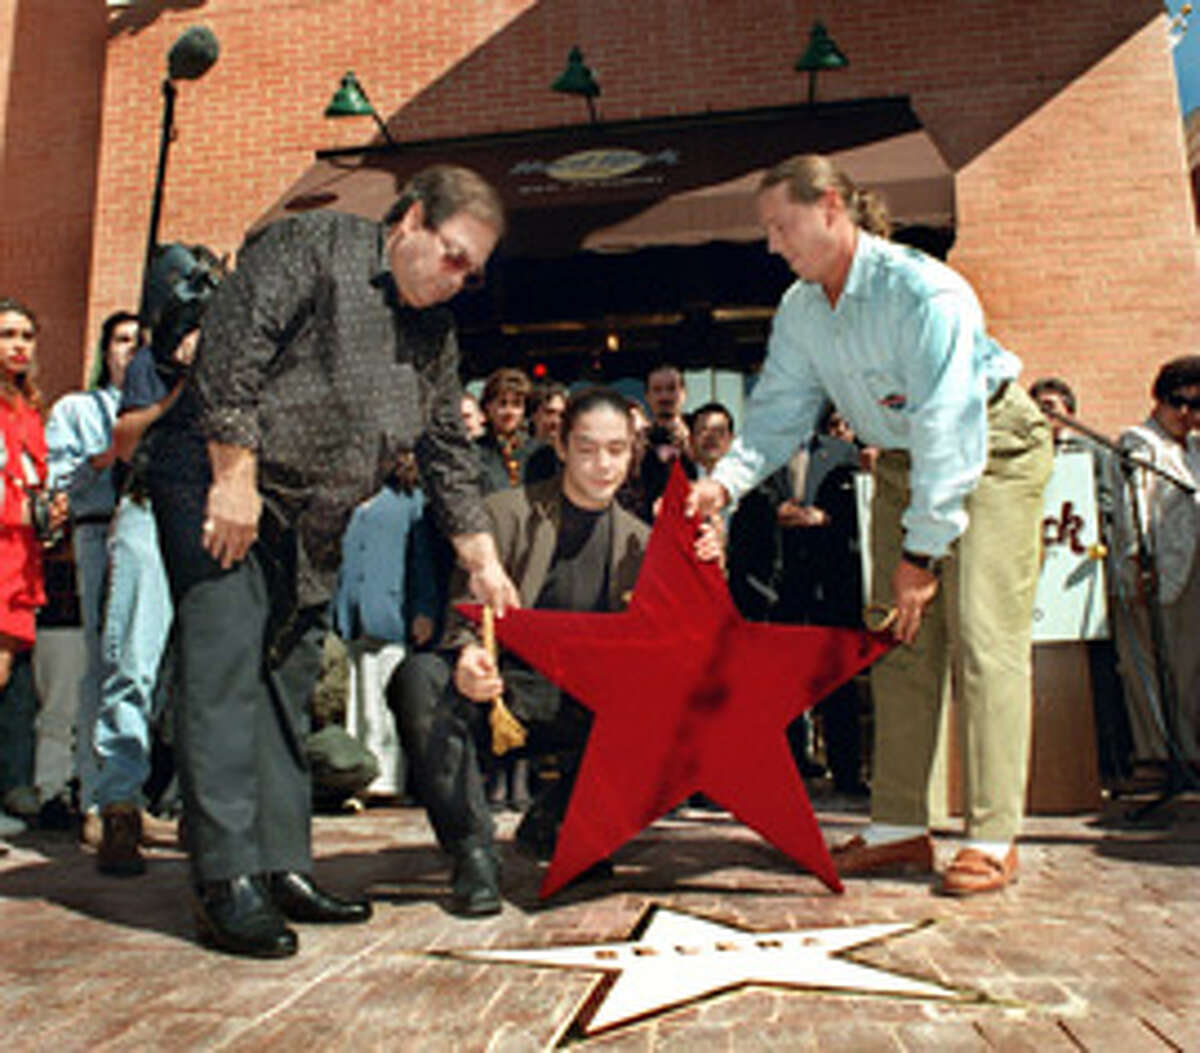 Check out her sidewalk star at Hard Rock Cafe Long before Selena's star was included on the Hollywood Walk of Fame, the Hard Rock Cafe in downtown San Antonio designated a spot outside the restaurant to honor her months after her 1995 death. Inside, fans can find Selena memorabilia, like an outfit worn by Queen of Tejano when she performed at the restaurant's grand opening in January 1995.